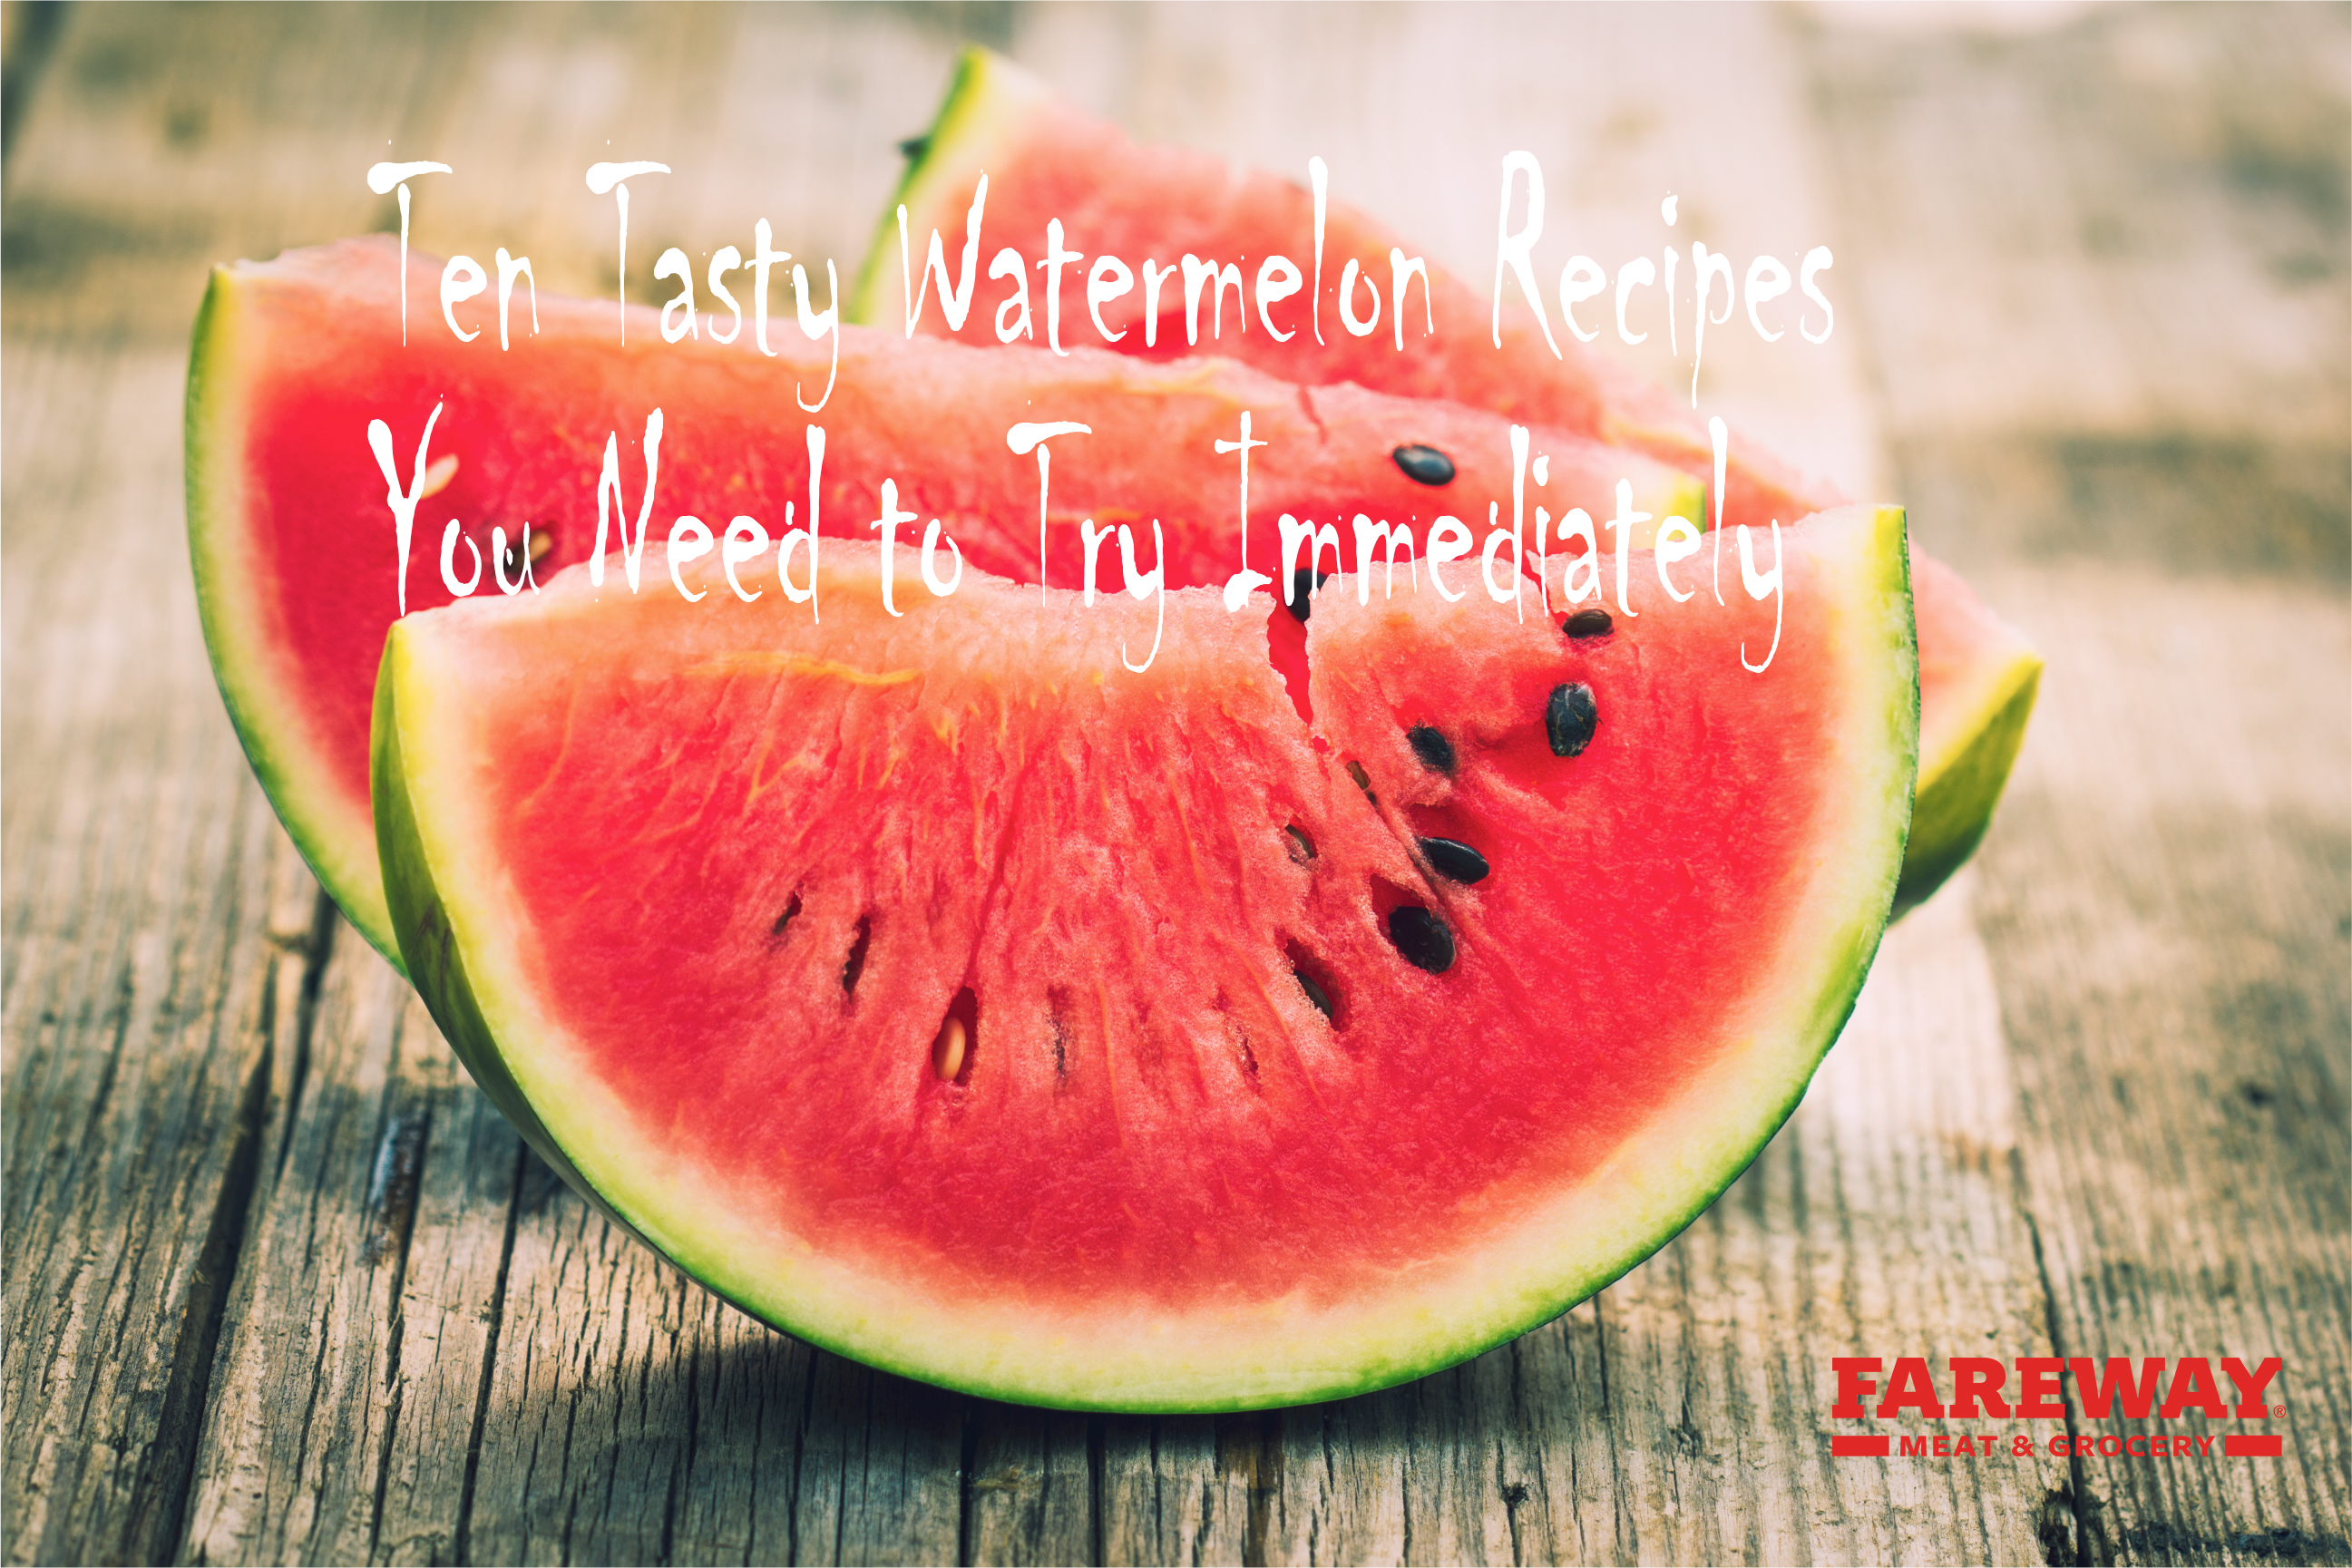 Image of watermelon for a Fareway logo.